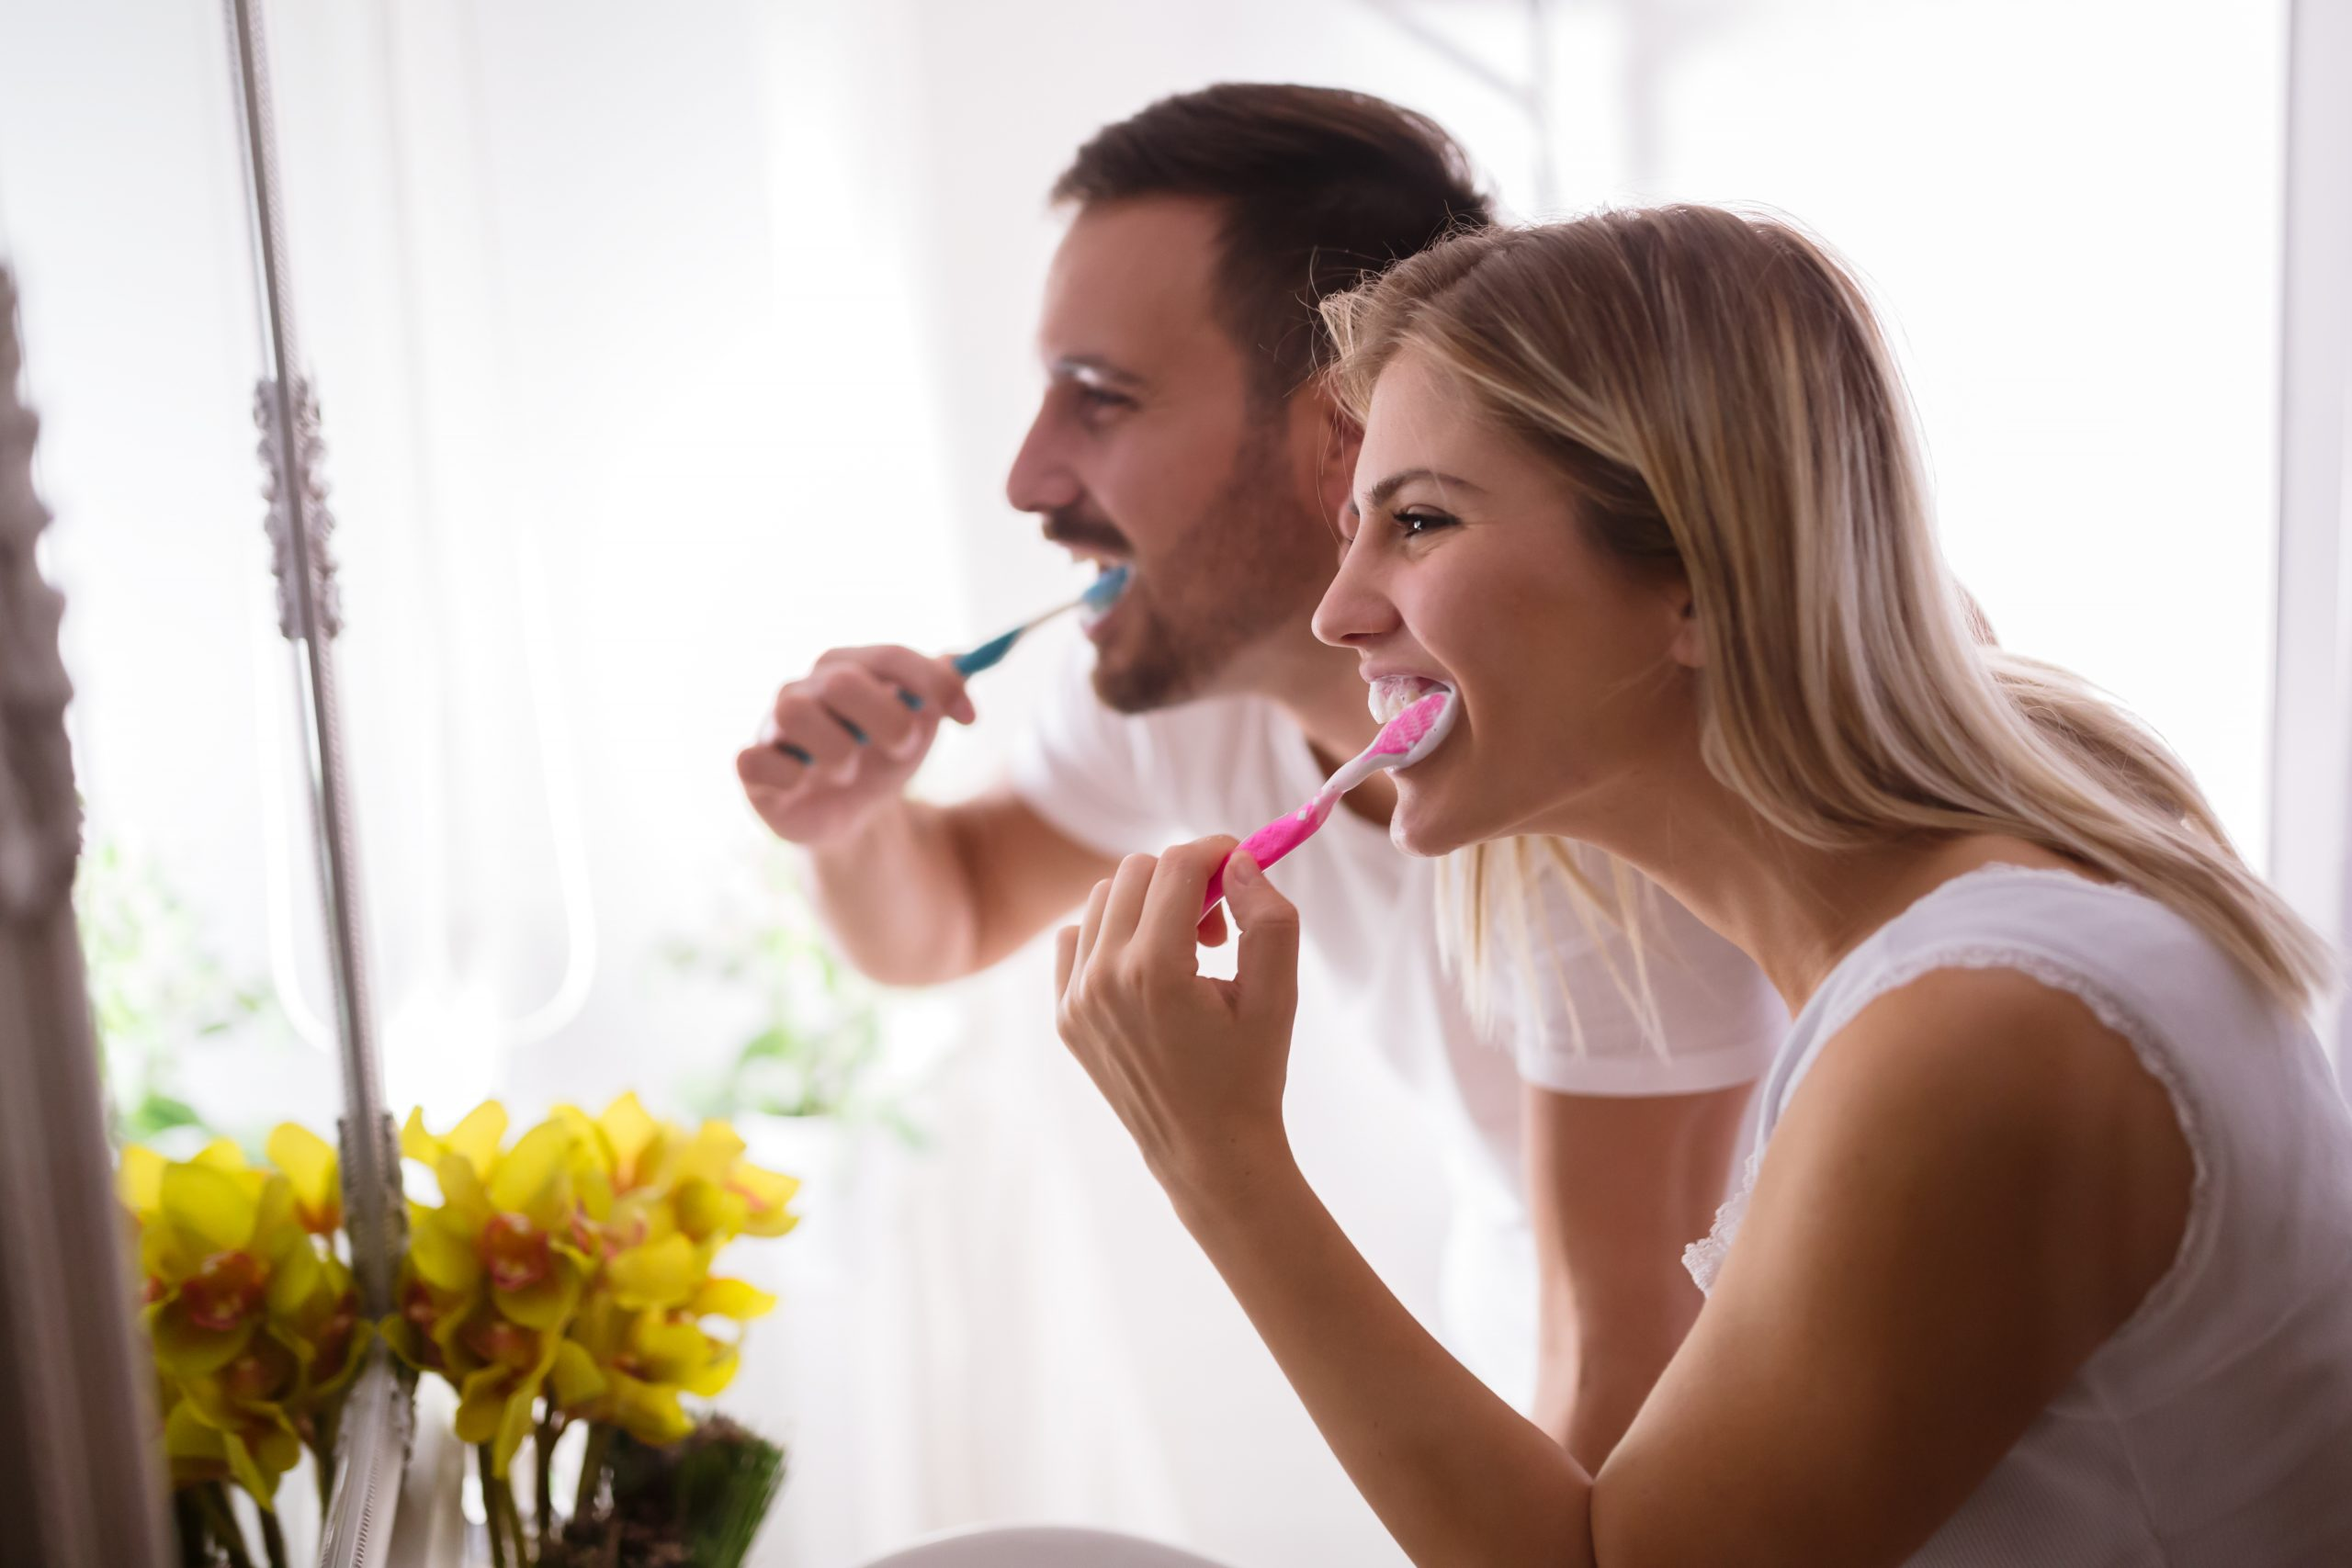 Dentist in Newnan | Are You Brushing Your Teeth Properly?